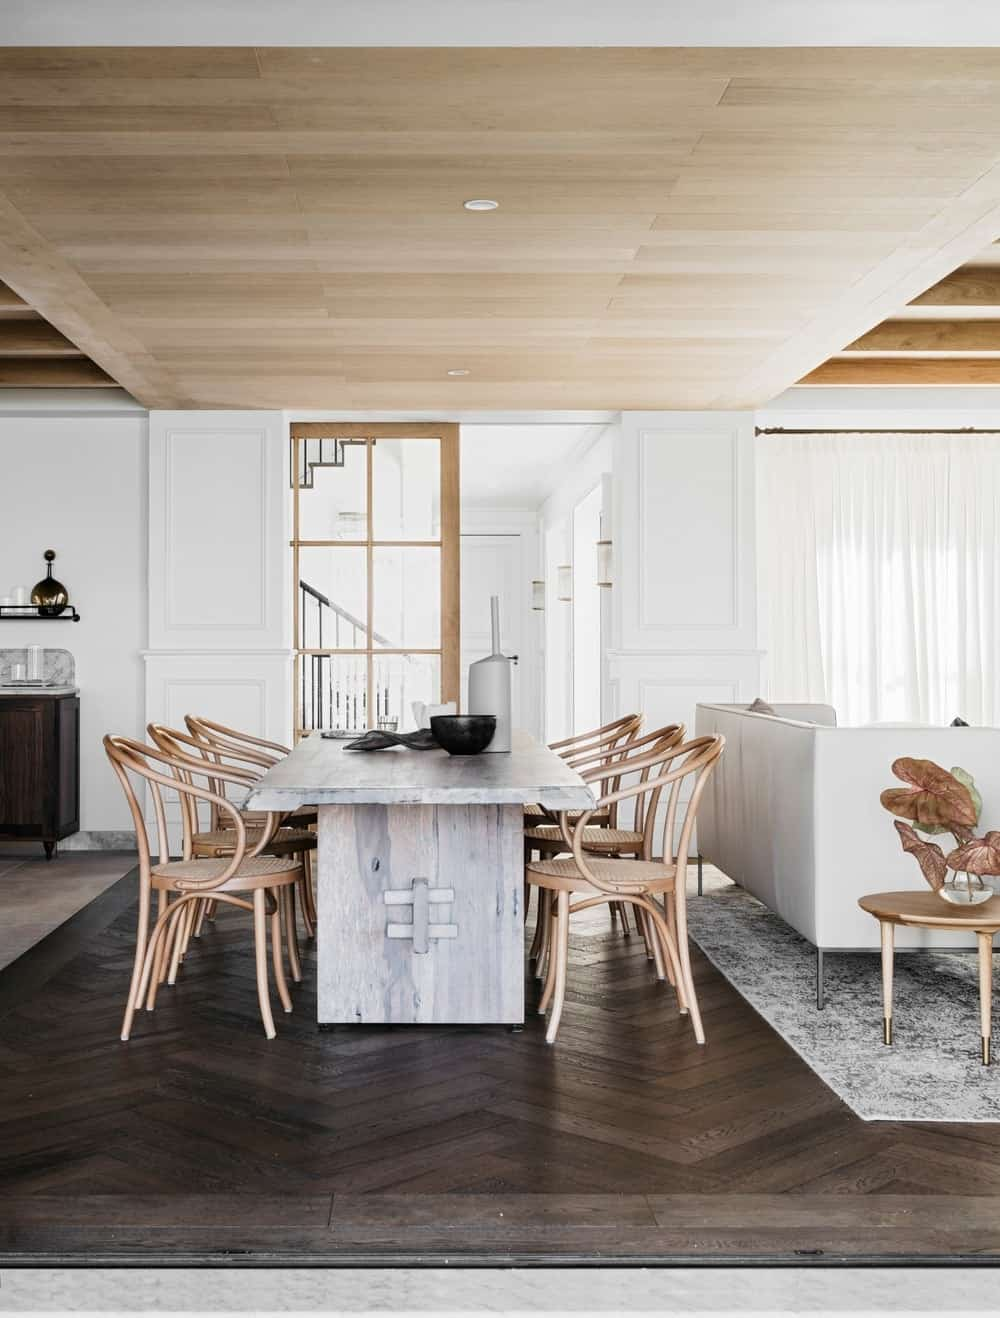 This is an open concept house with a cozy dining space featuring a distressed dining table and wooden round back chairs that can accommodate eight people. A very warming area with wood paneled ceiling and a herringbone flooring.